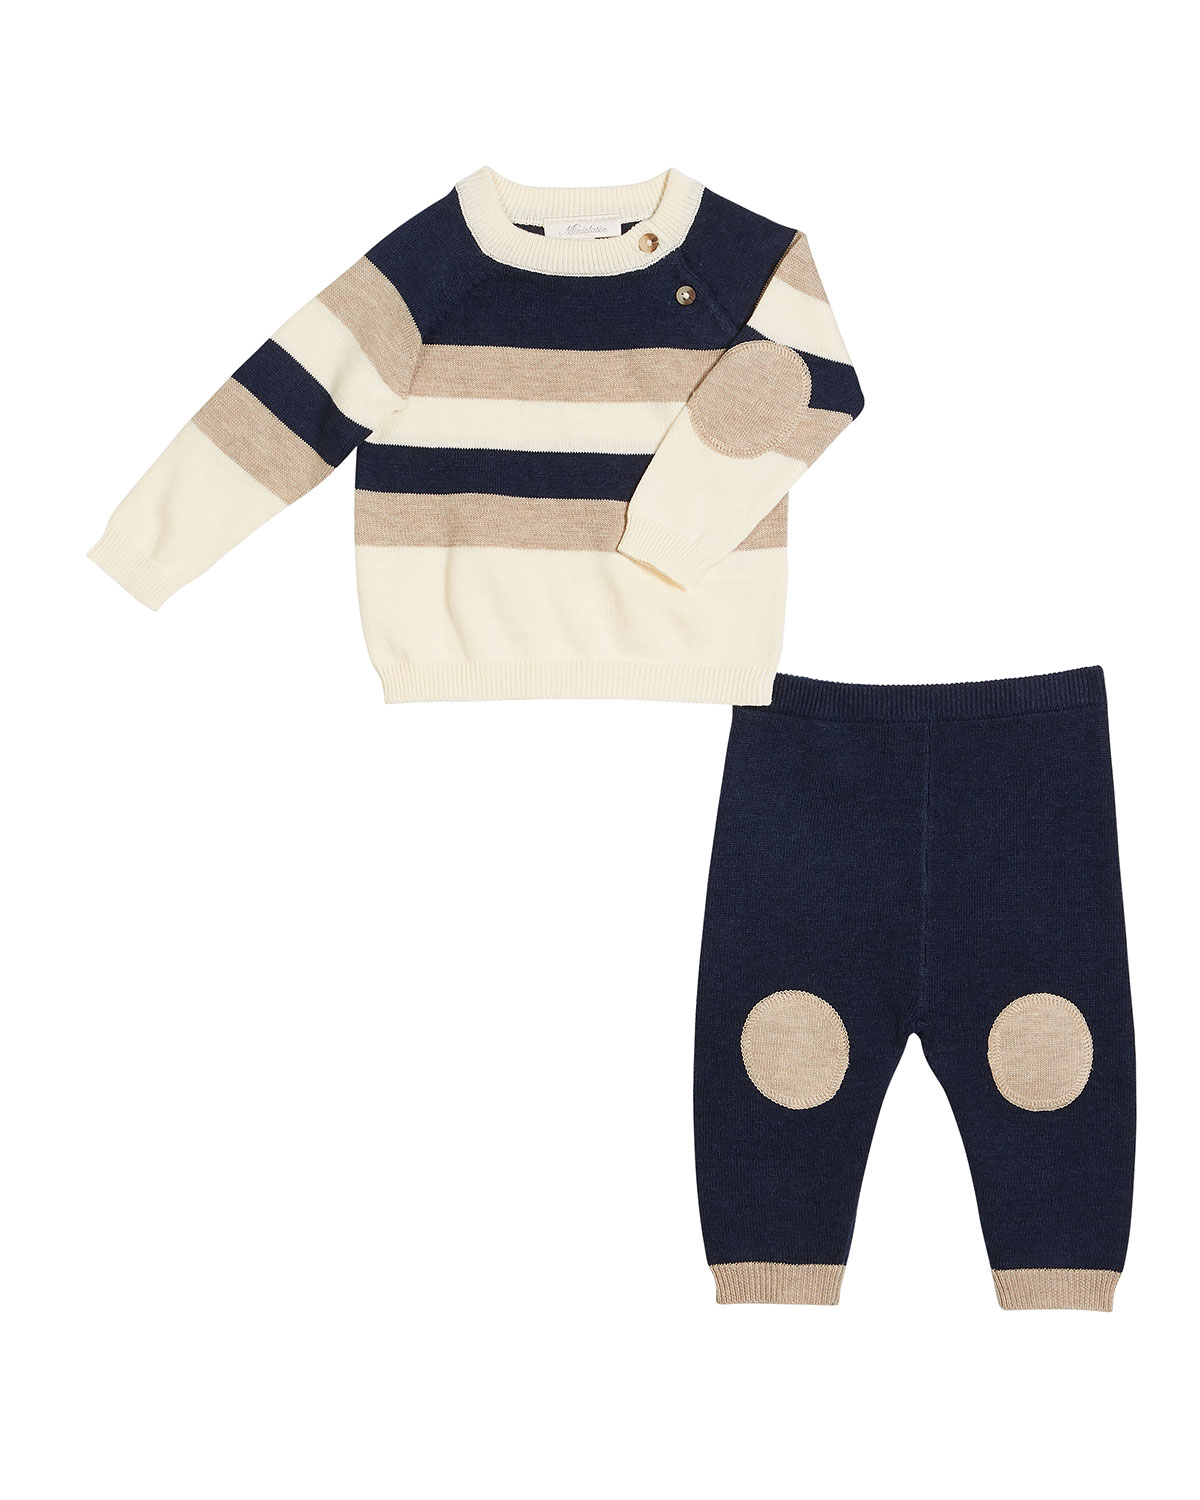 Colorblock Striped Sweater w/ Matching Sweatpants, Size 3-9 Months